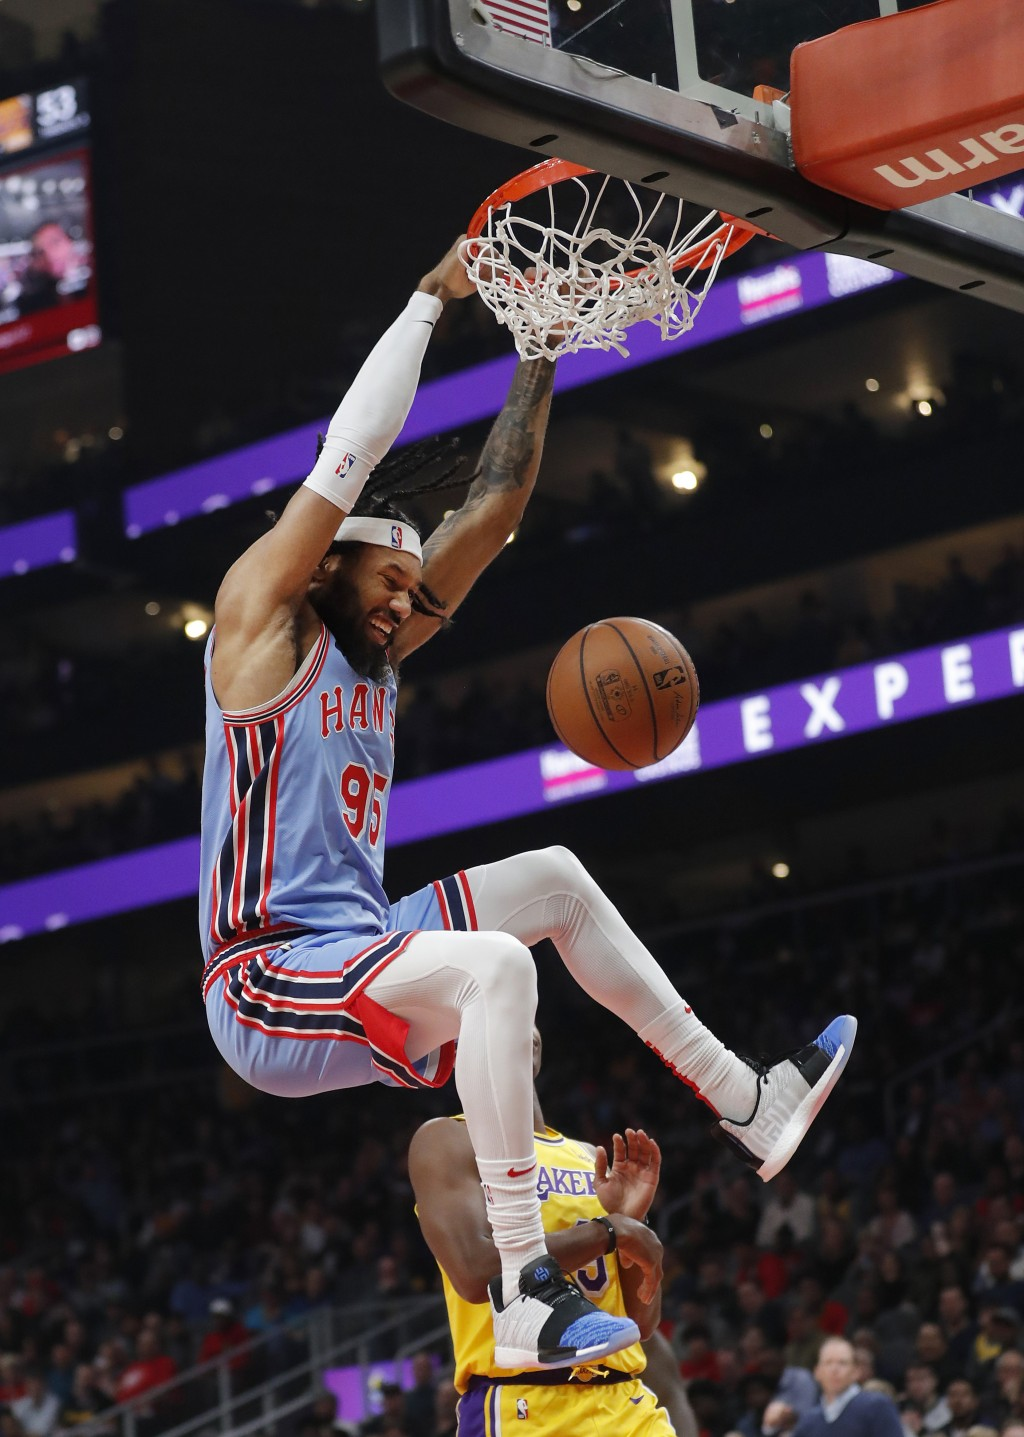 Atlanta Hawks forward DeAndre' Bembry (95) scores against the Los Angeles Lakers during the first half of an NBA basketball game Tuesday, Feb. 12, 201